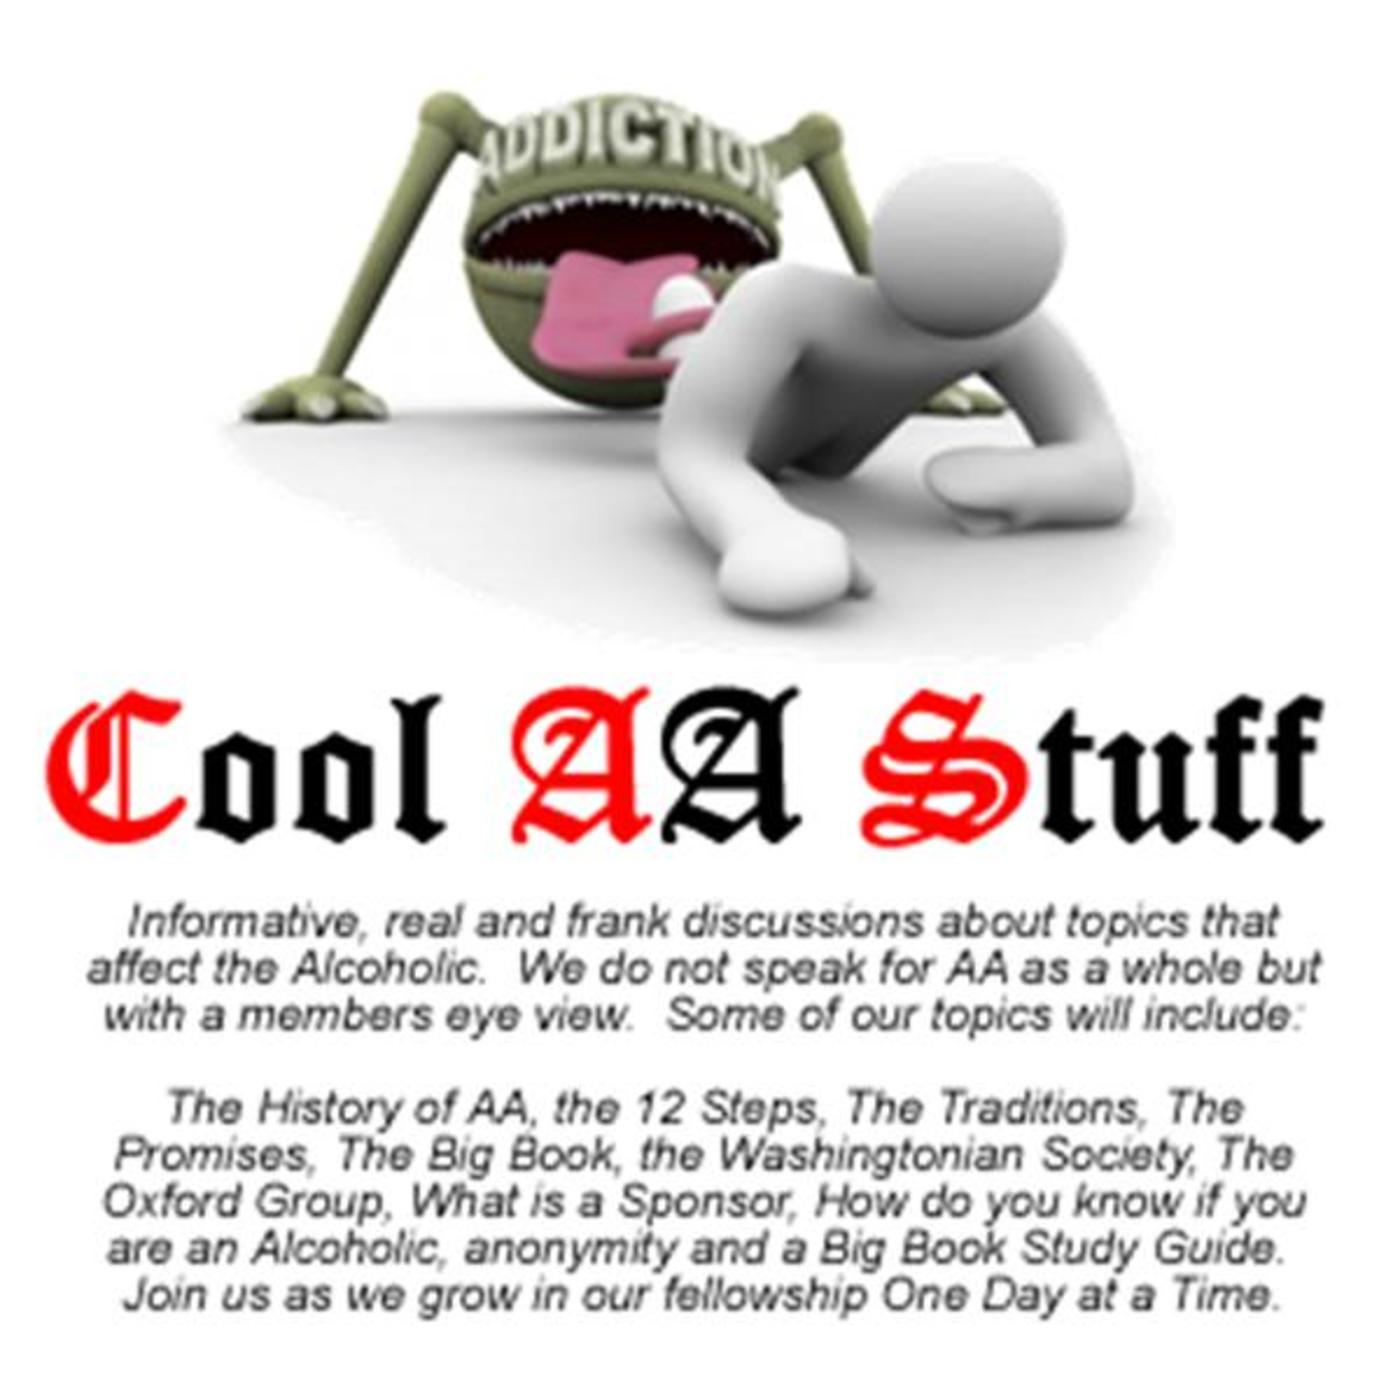 Cool Aa Stuff Listen Free On Castbox